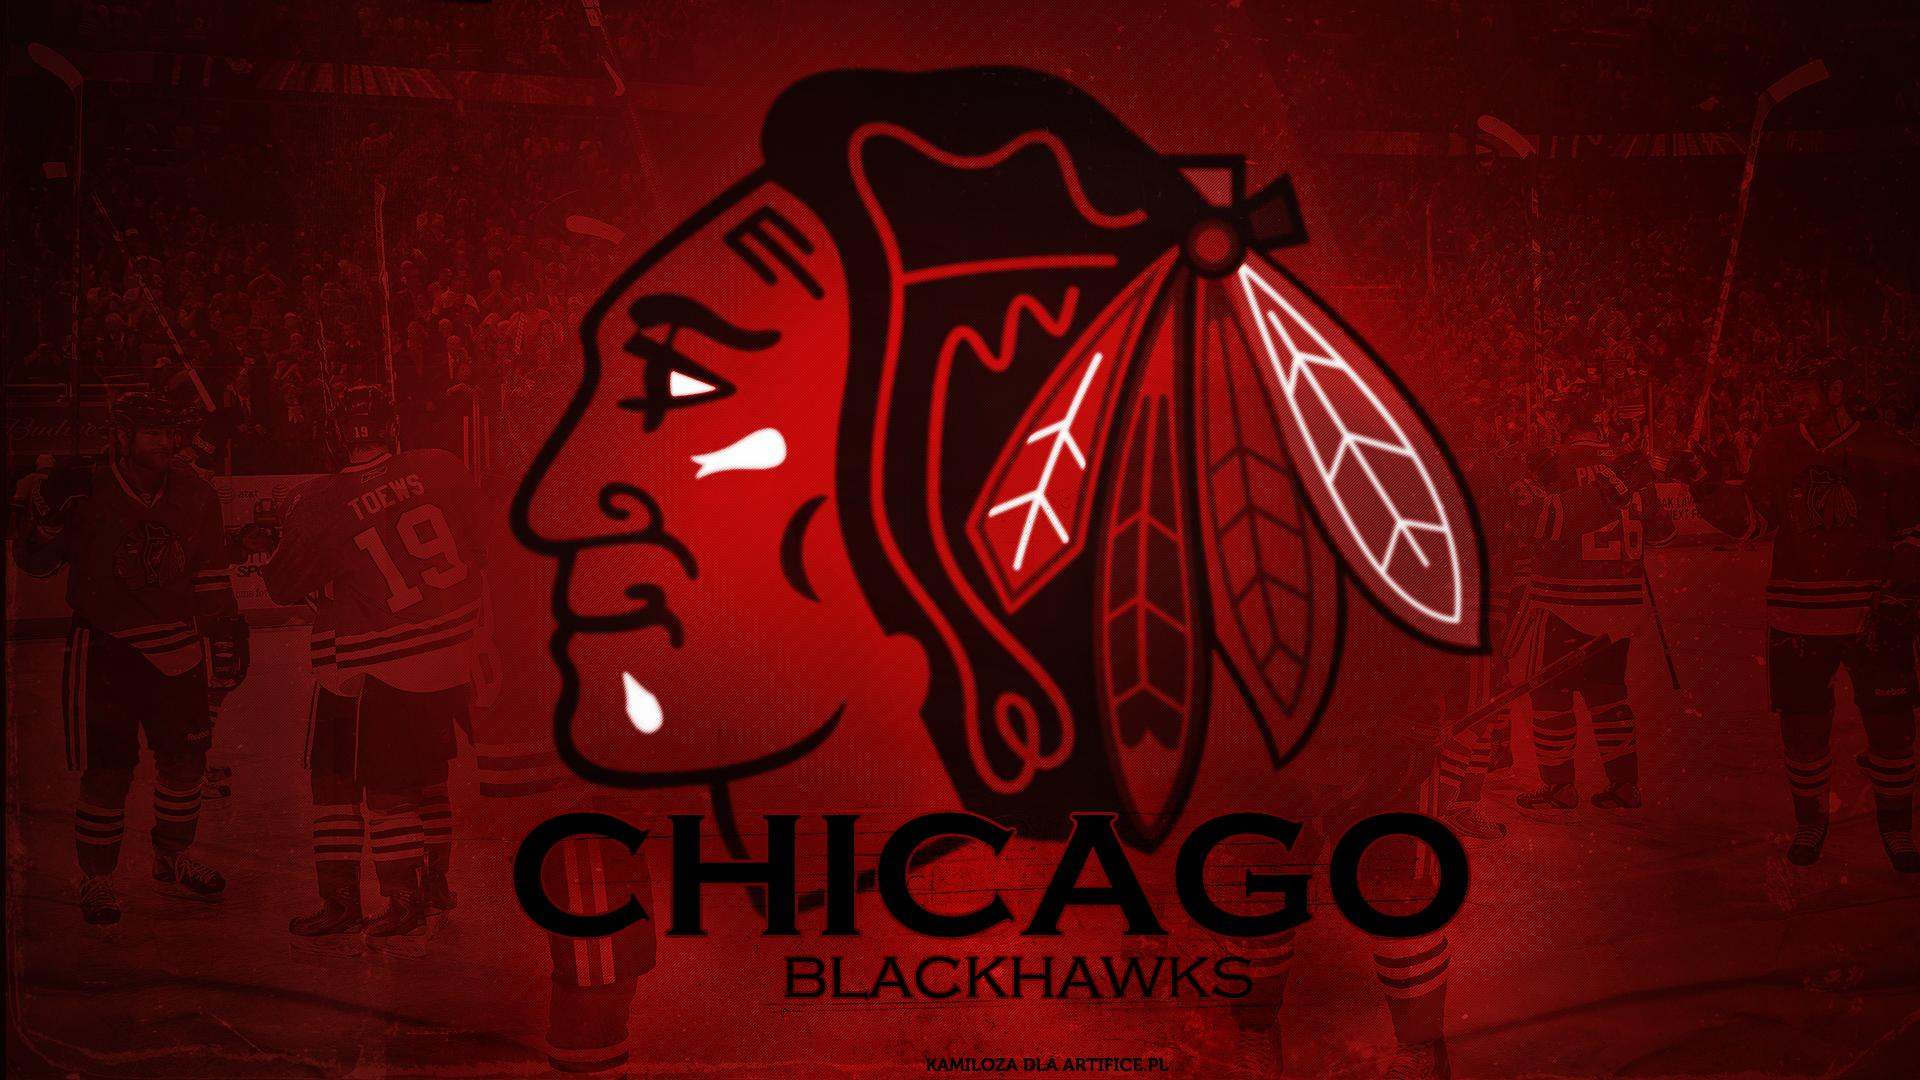 Free Chicago Blackhawks Wallpapers - Wallpaper Cave